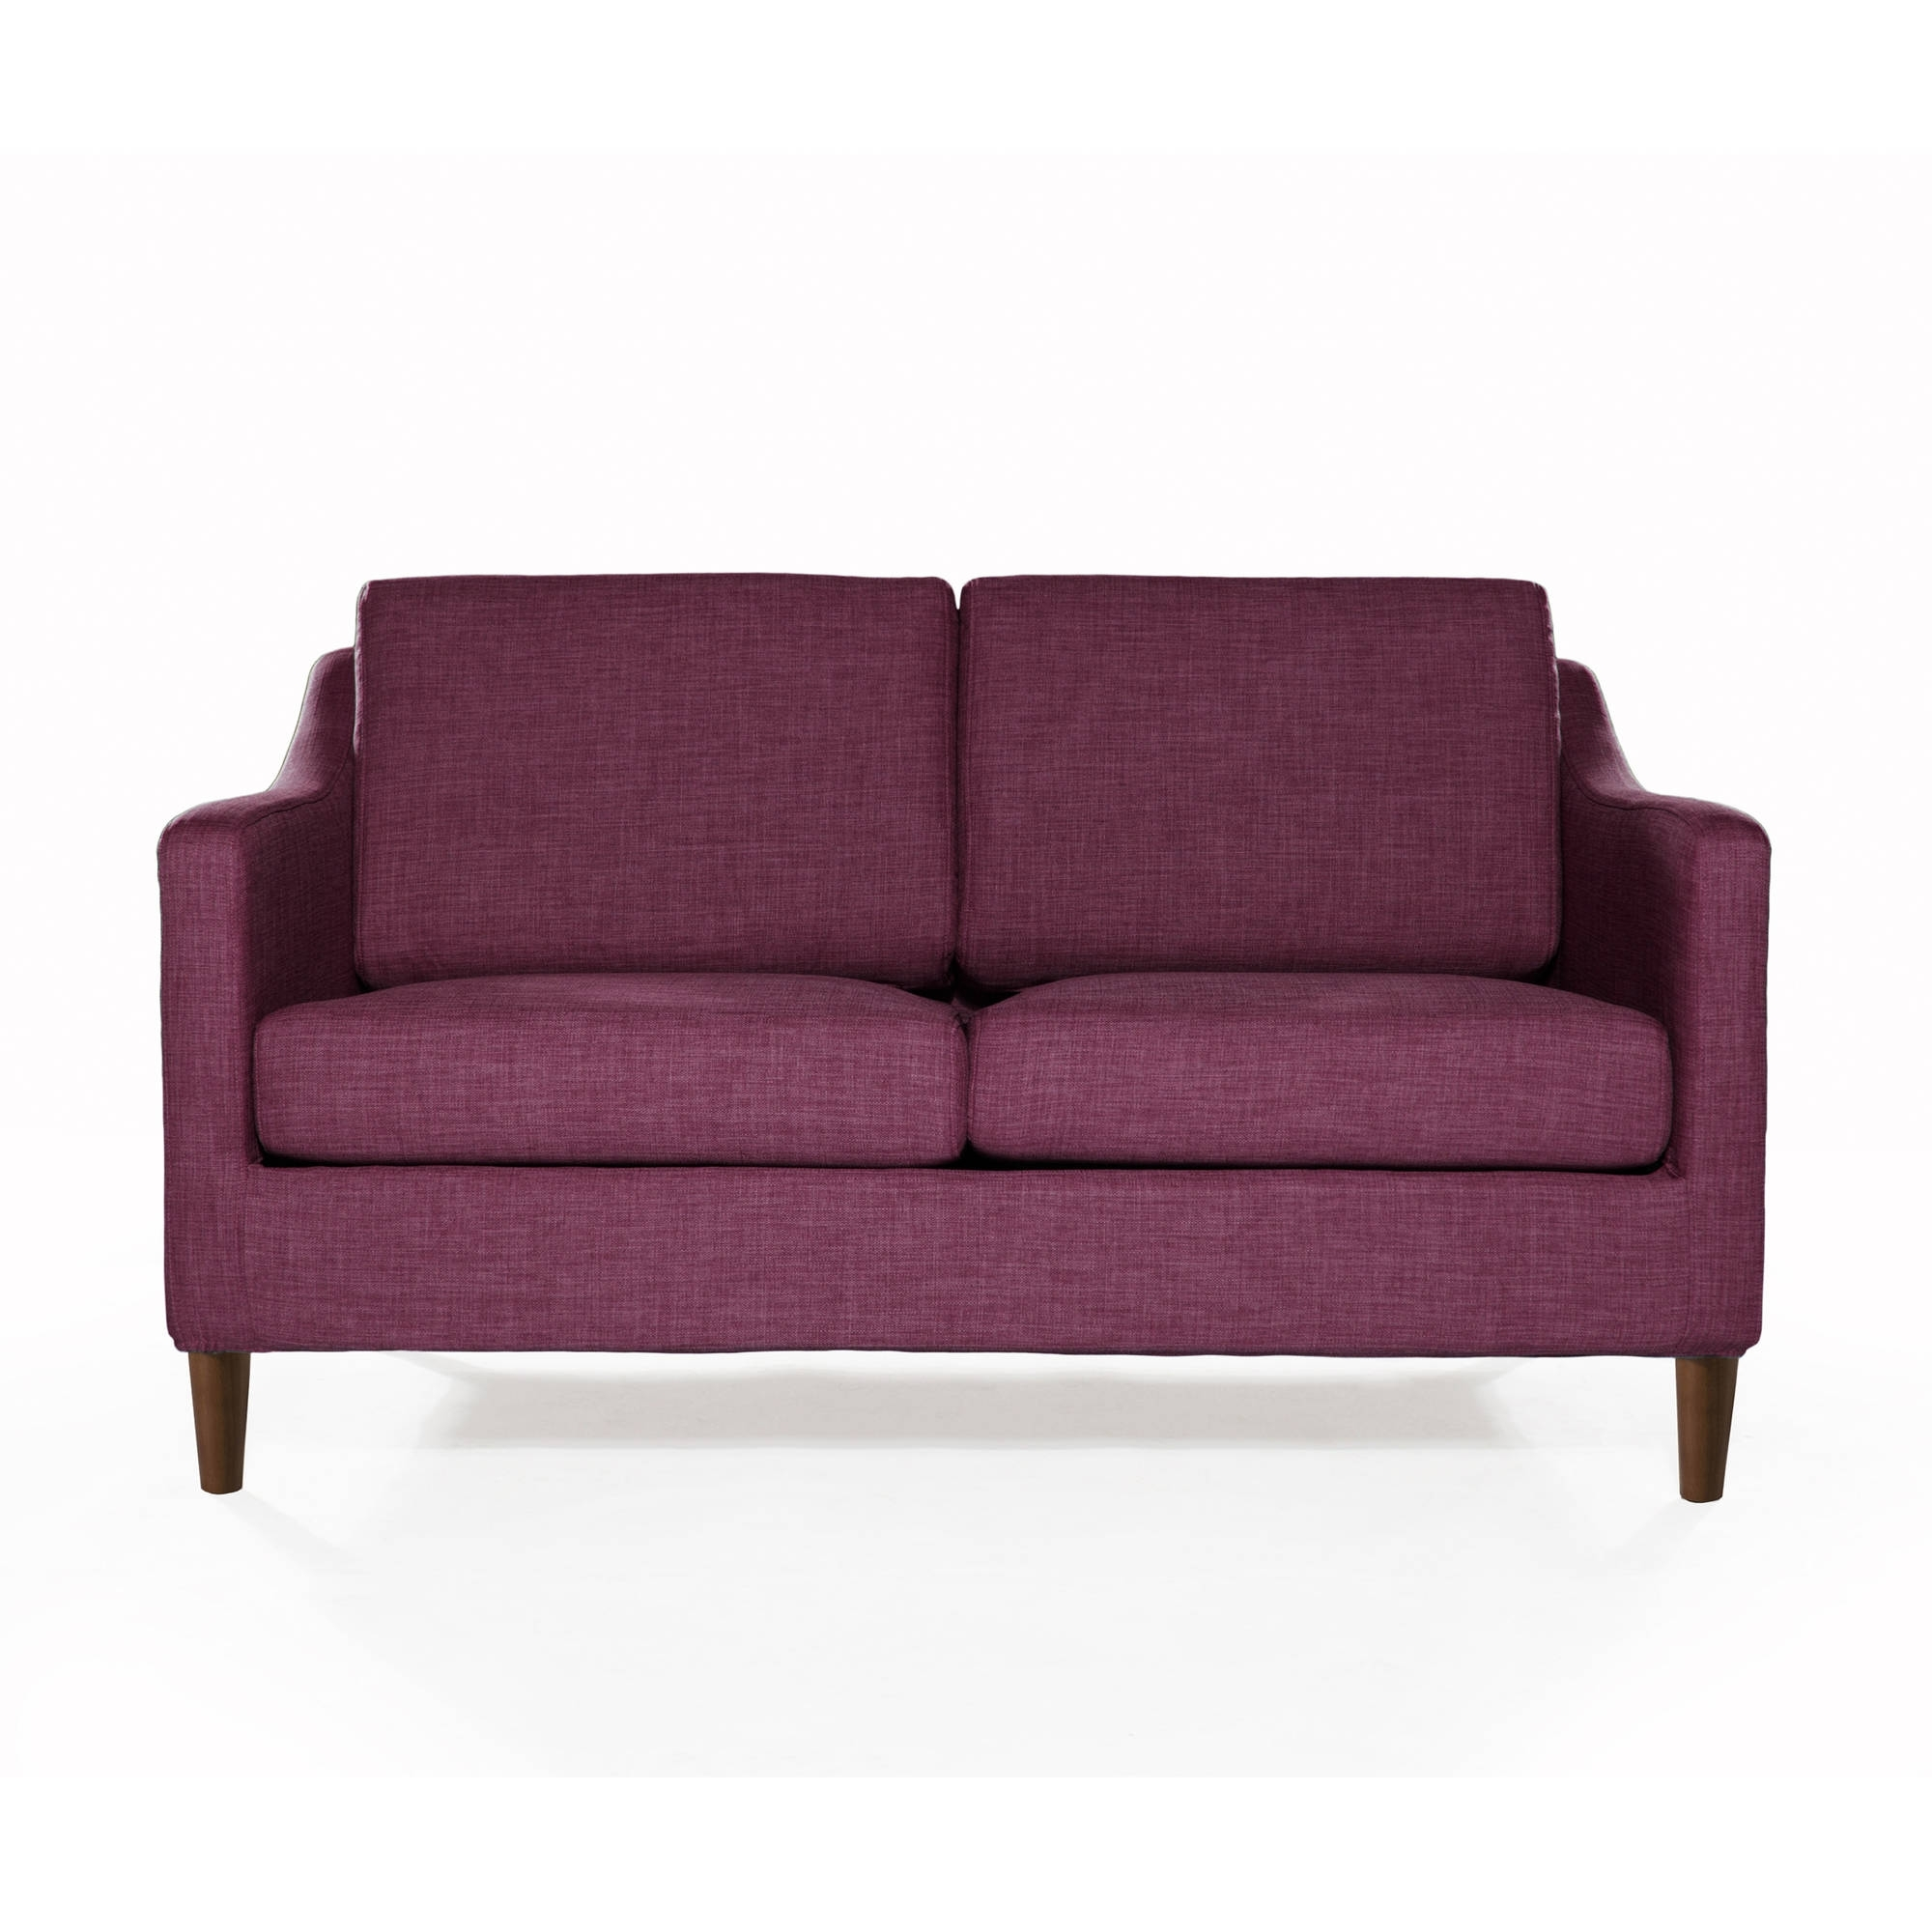 Newest Sectional Sofas Under 600 For Sectional Sofas – Walmart (View 6 of 20)